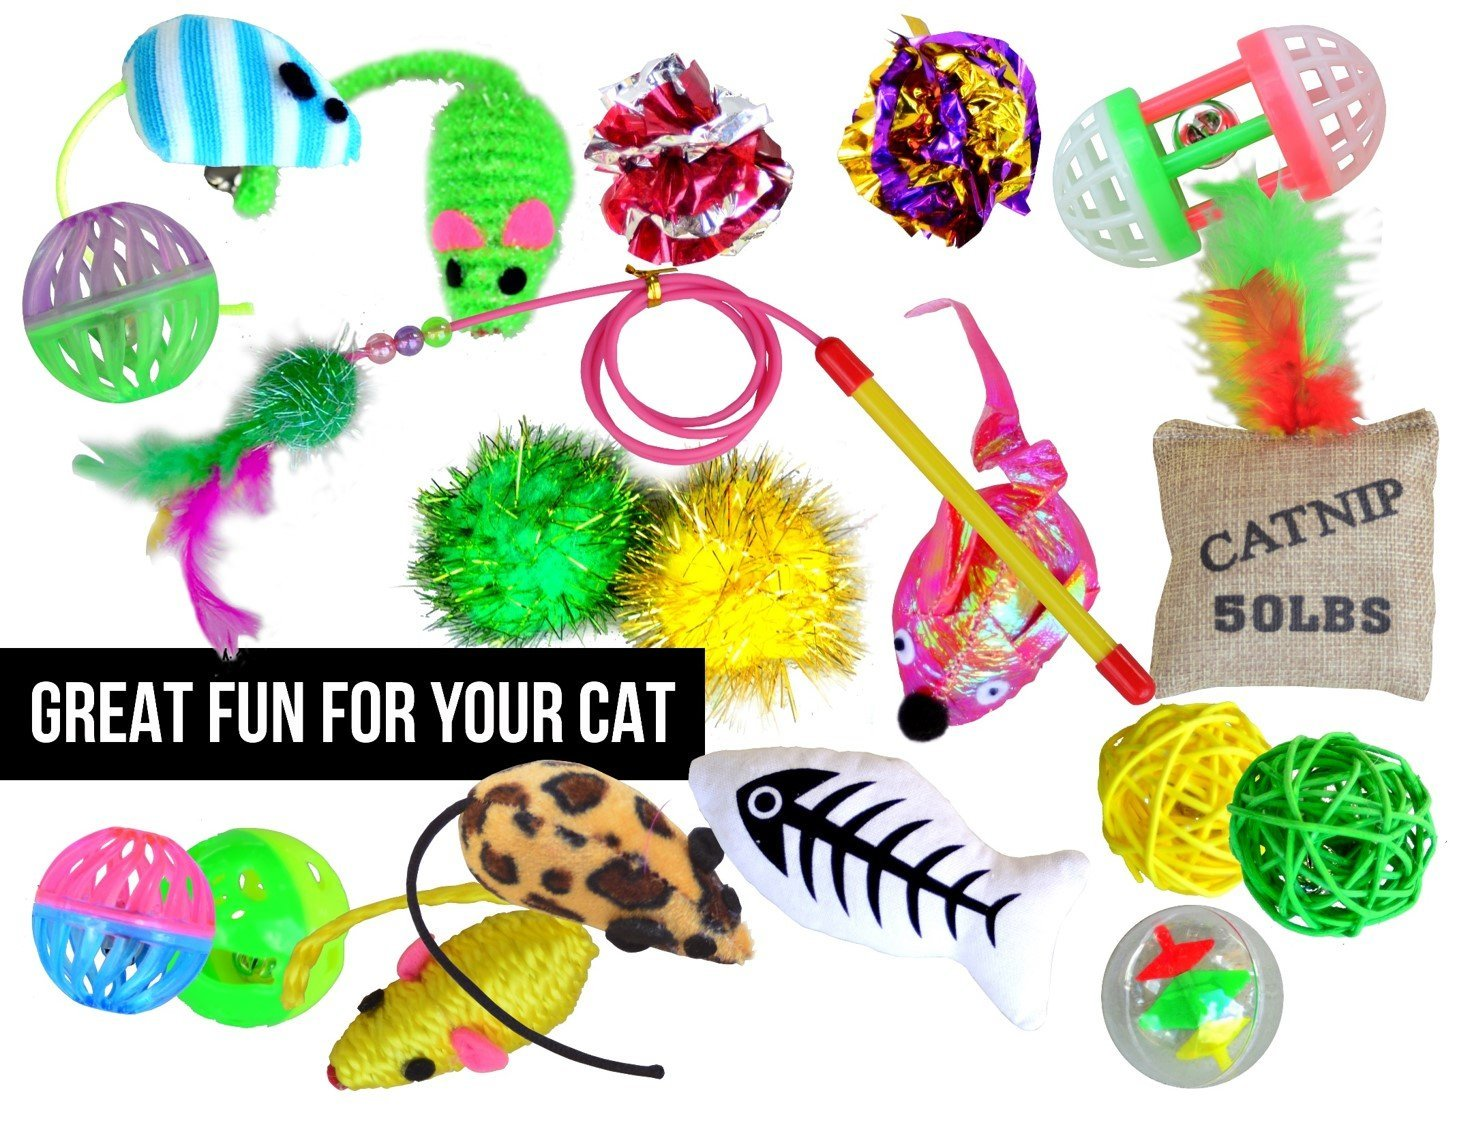 Interactive Cat Toys Variety Pack - 20 Piece Popular Assortment to Keep Your Pet Feline Occupied for Hours | Includes Balls, Bells, Mice, Fish Catnip Cushion, Teaser and More